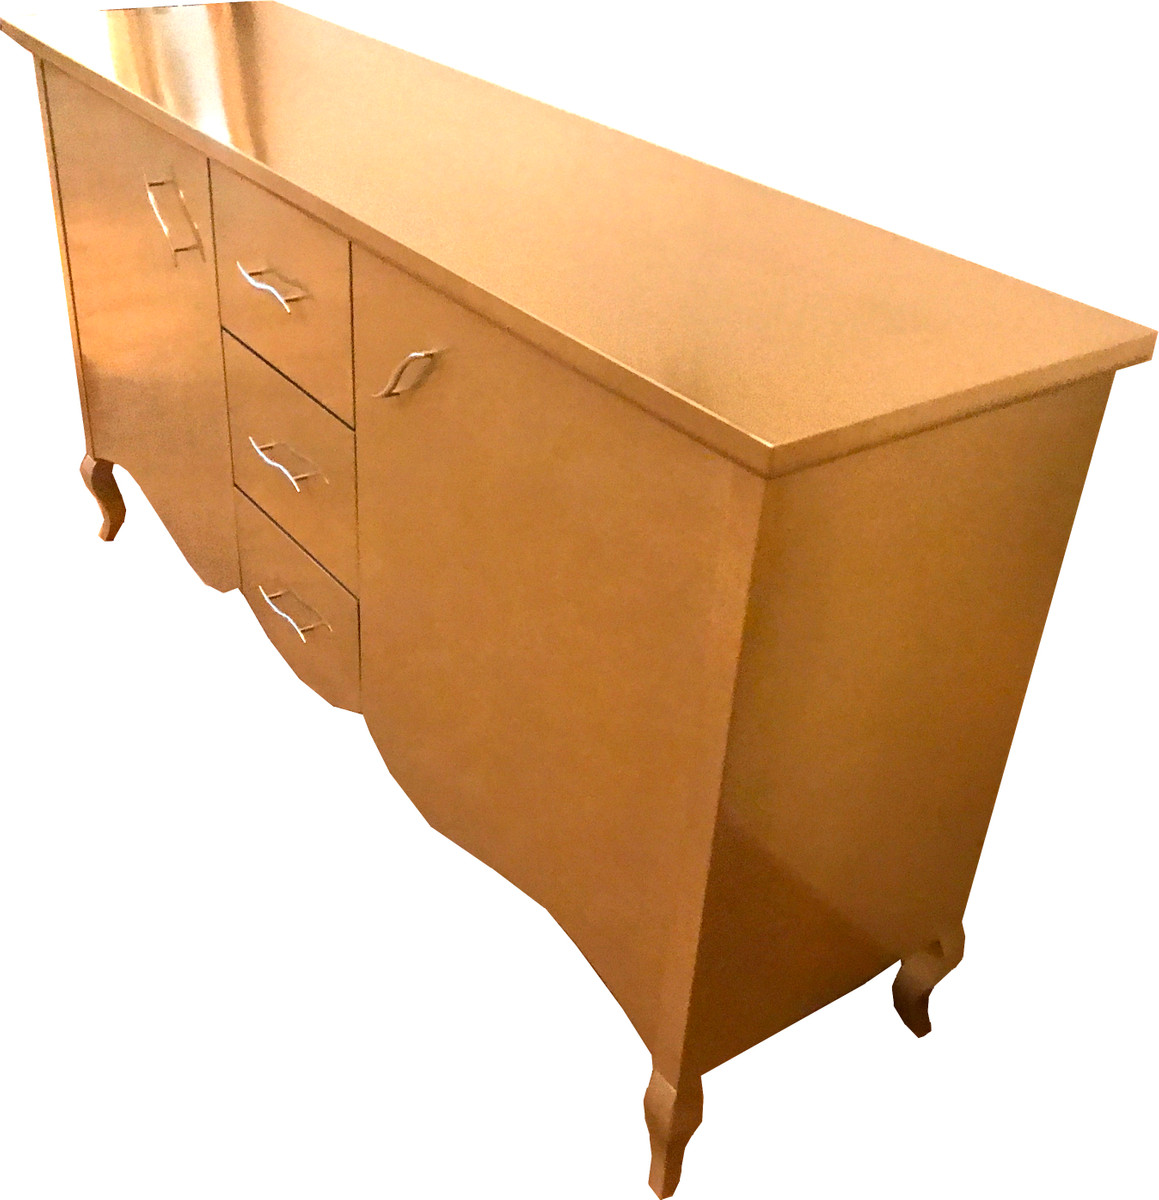 Casa Padrino Baroque Chest Of Drawers With 2 Doors And 3 Drawers Gold 160 X 45 X H 87 Cm Modern Baroque Sideboard Baroque Living Room Furniture